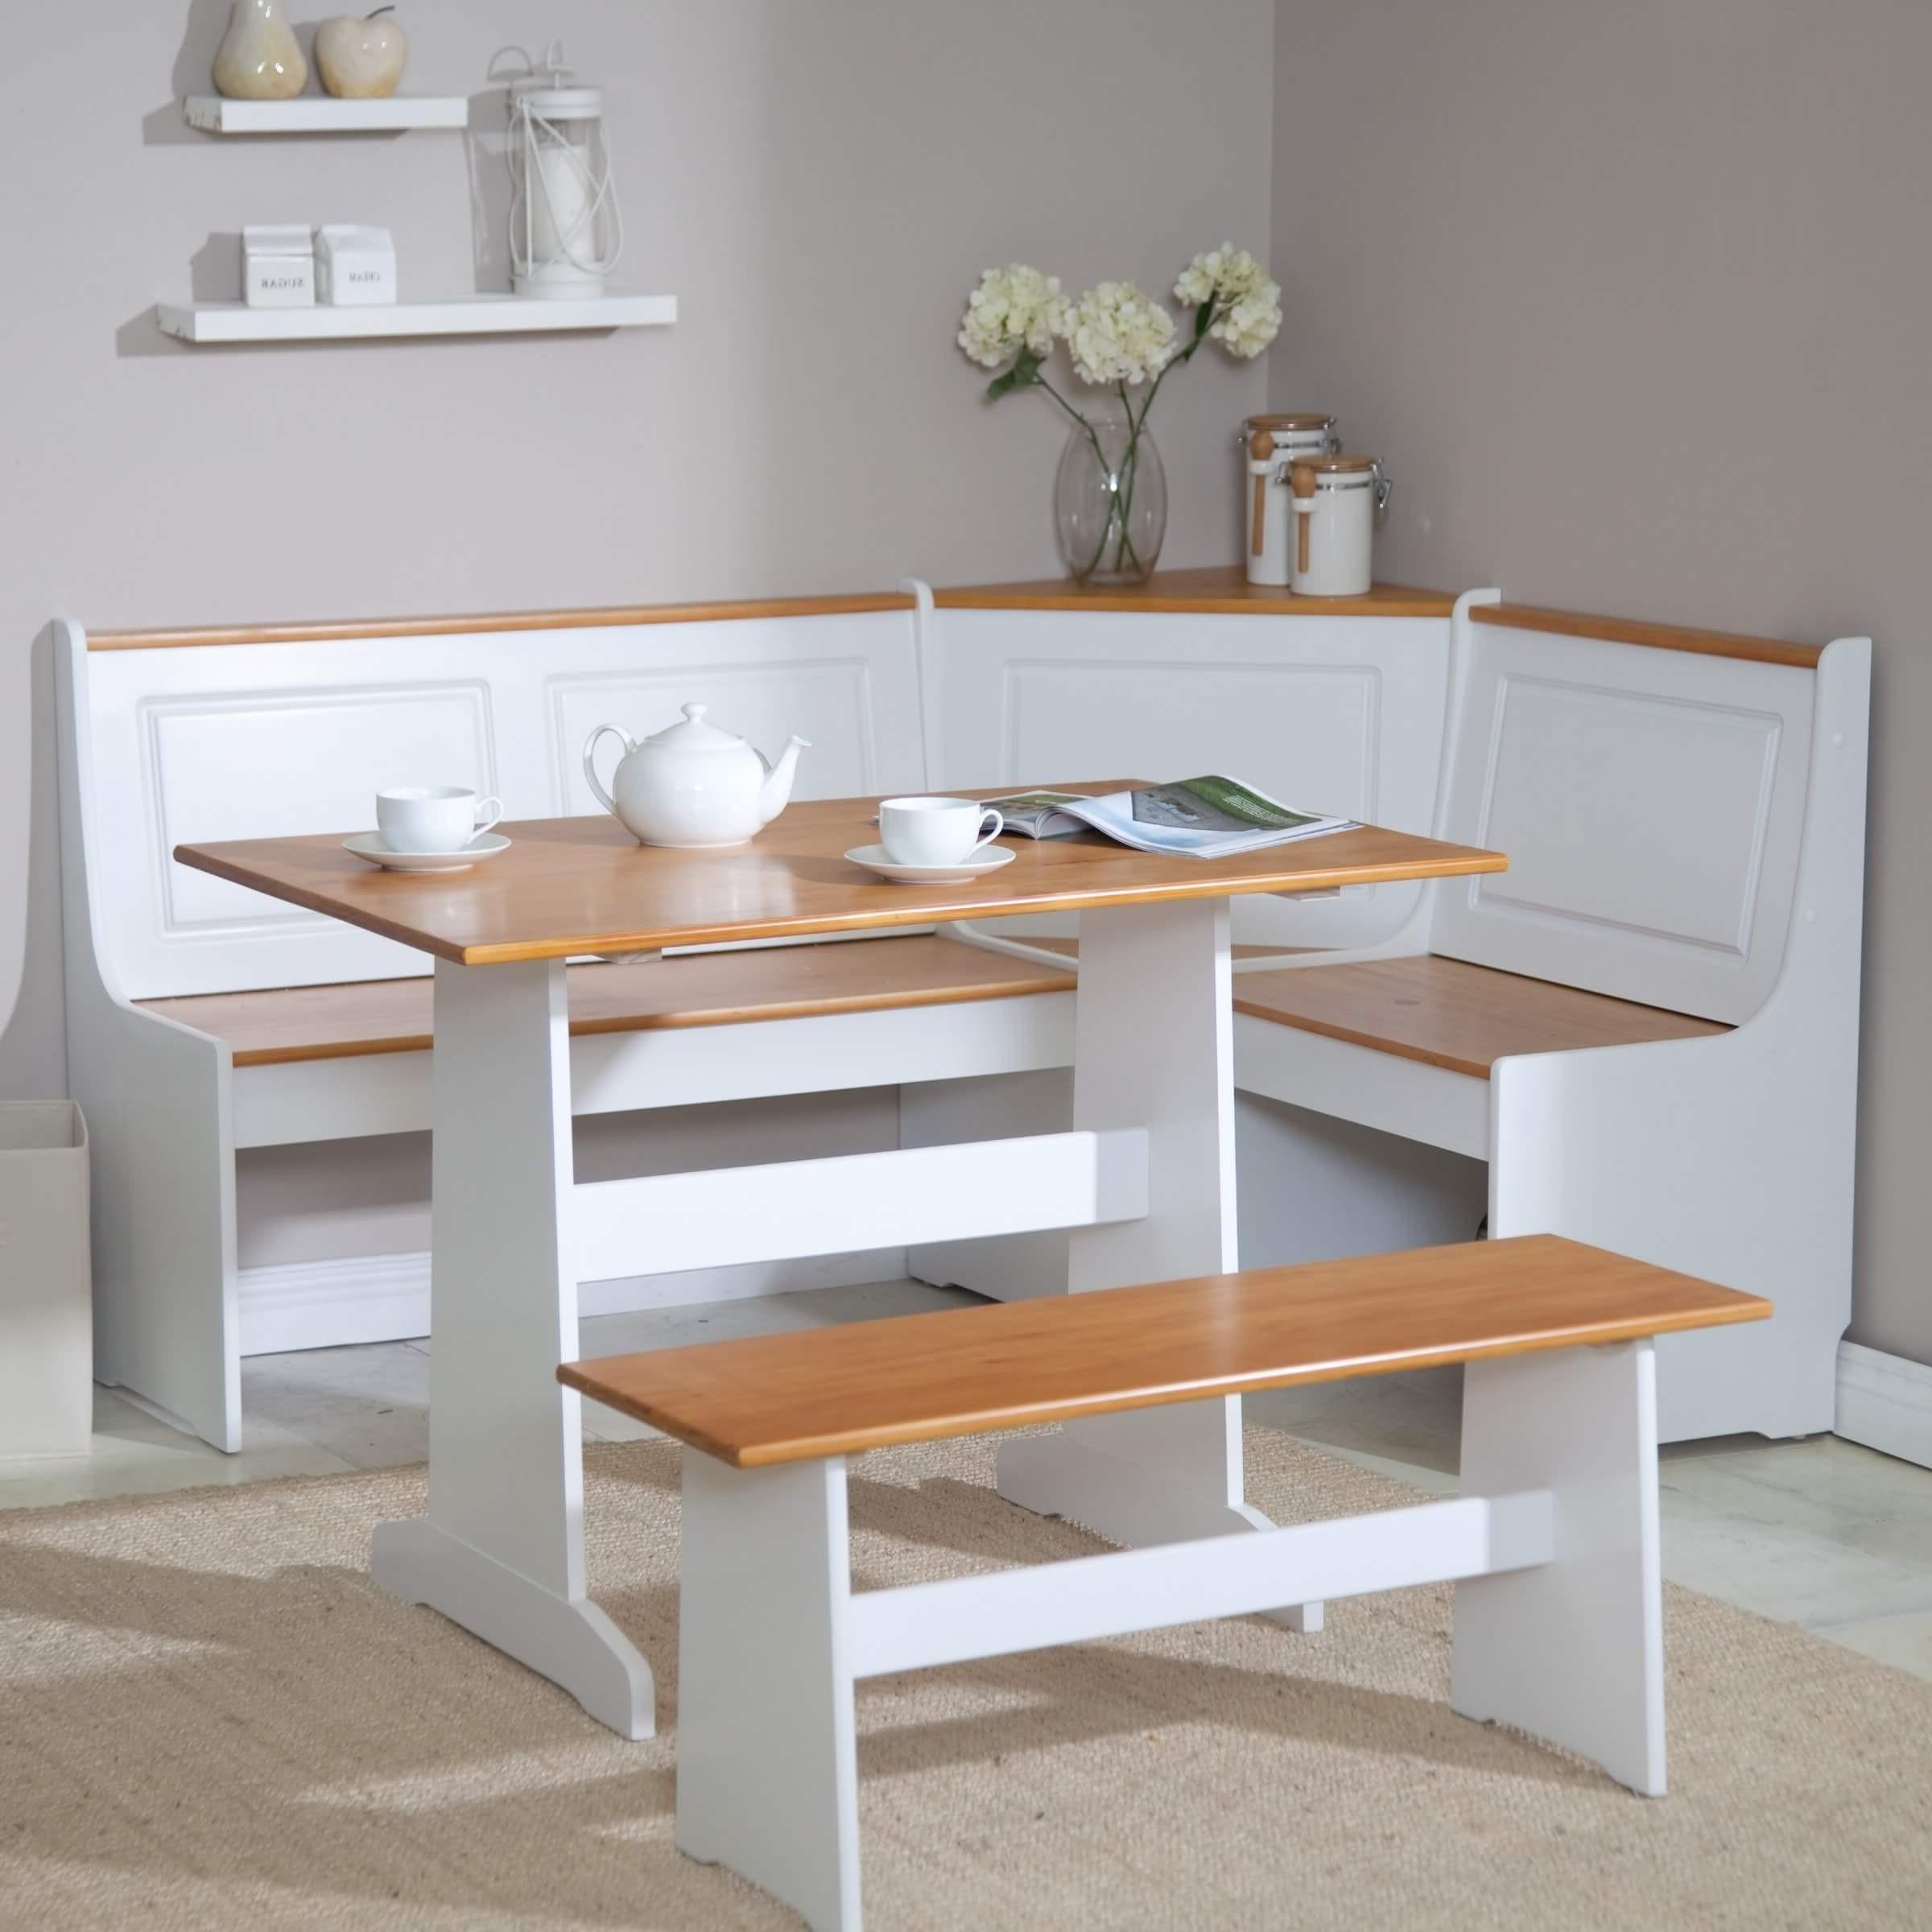 Corner Dining Room Table Nook Tablesith Benches